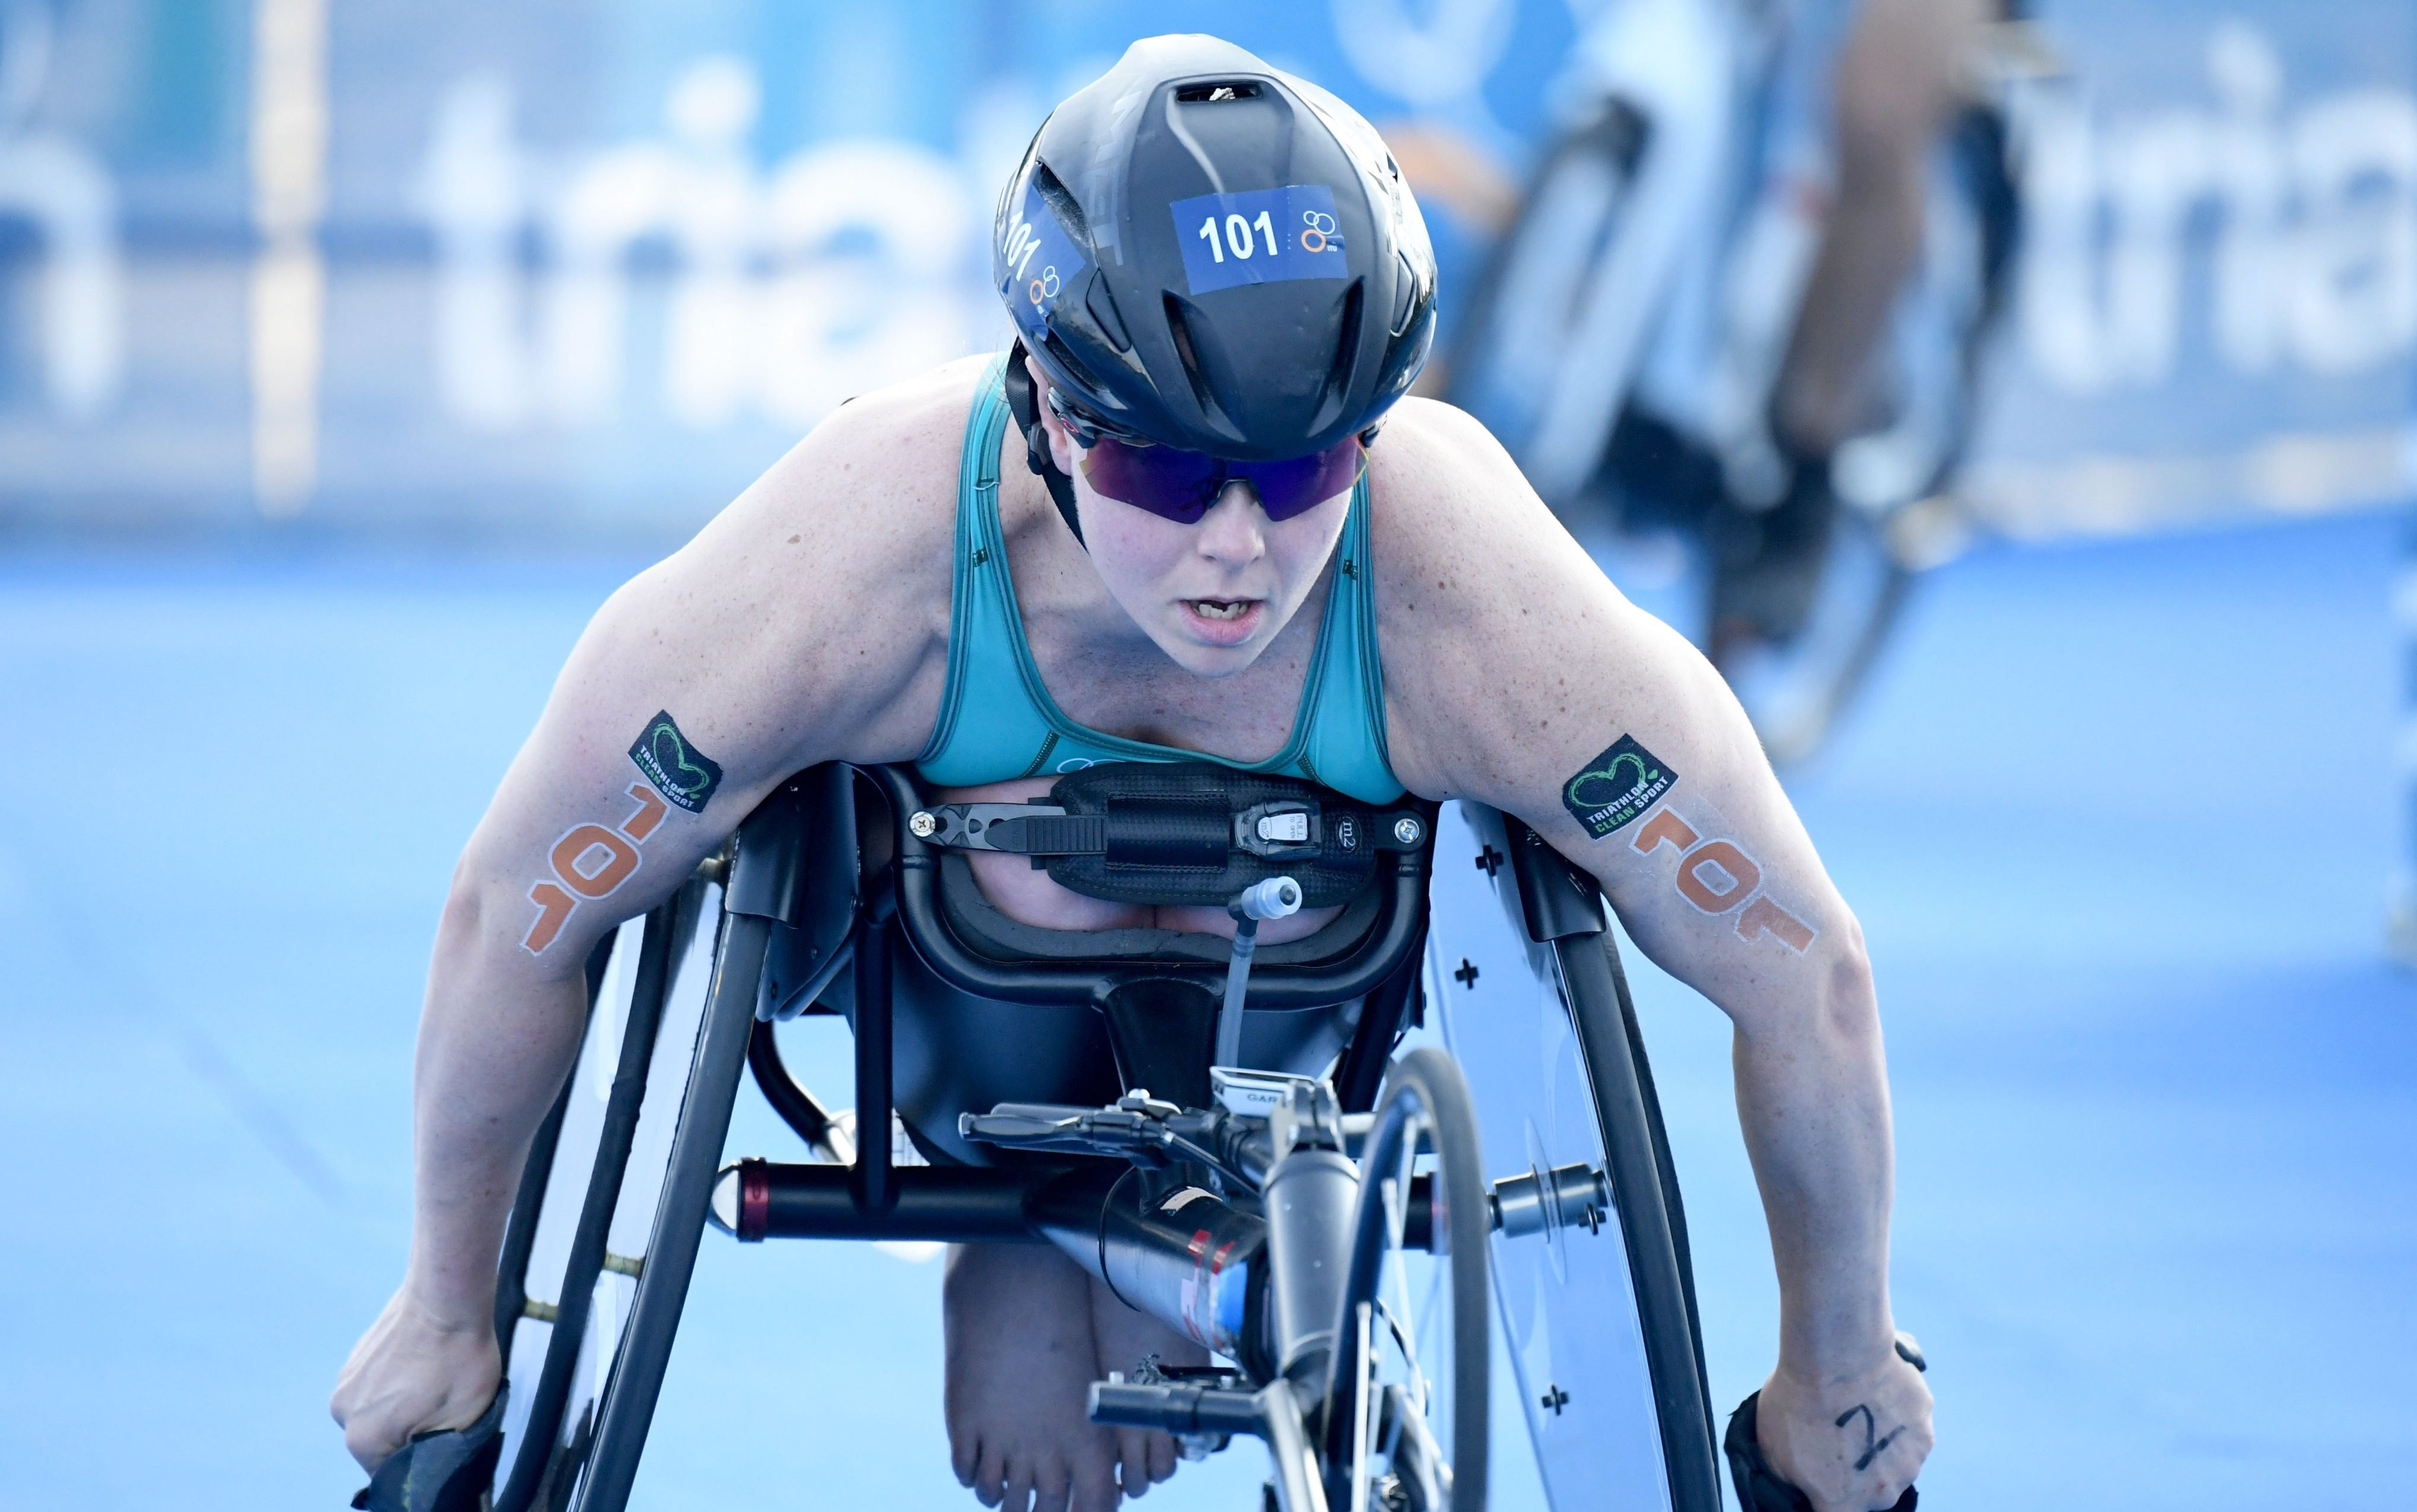 Silver for Tapp in Tokyo